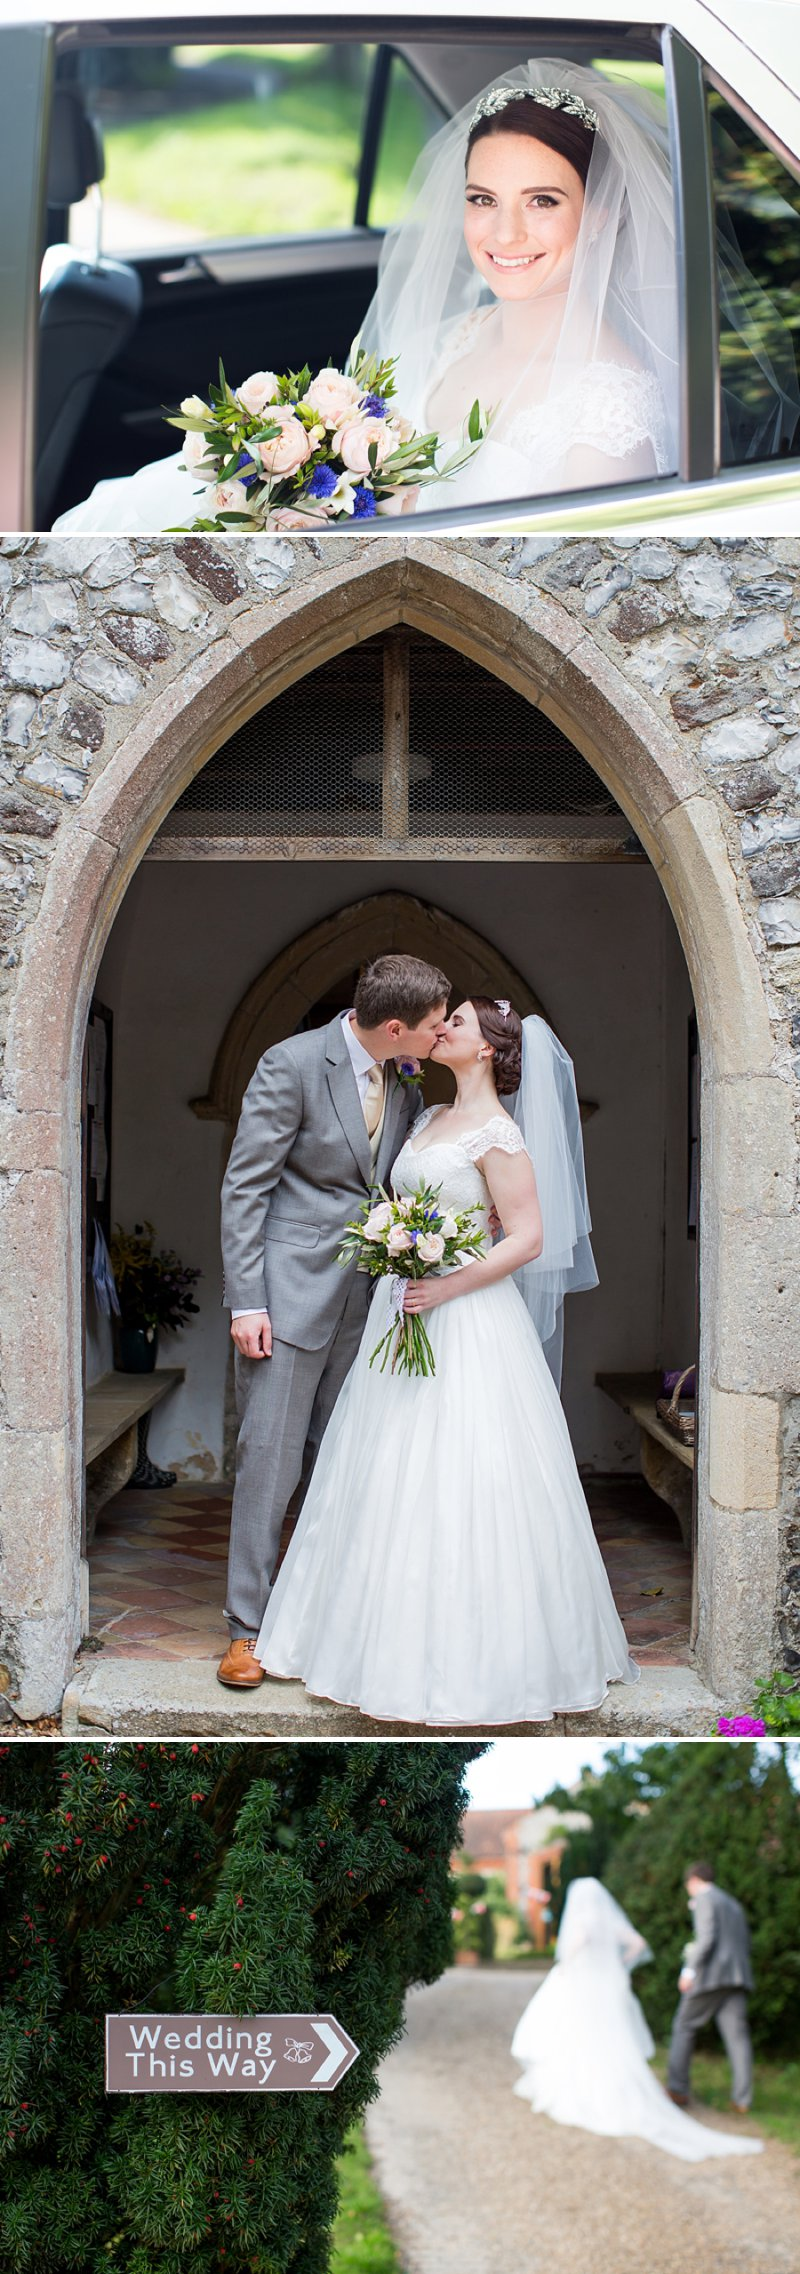 Elegant Wedding At Chaucer Barn Norfolk With Bride In Ivory Dita Gown By Naomi Neoh From The Bespoke Wardrobe With A Stewart Parvin Veil 1 I Guess I Just Like You.